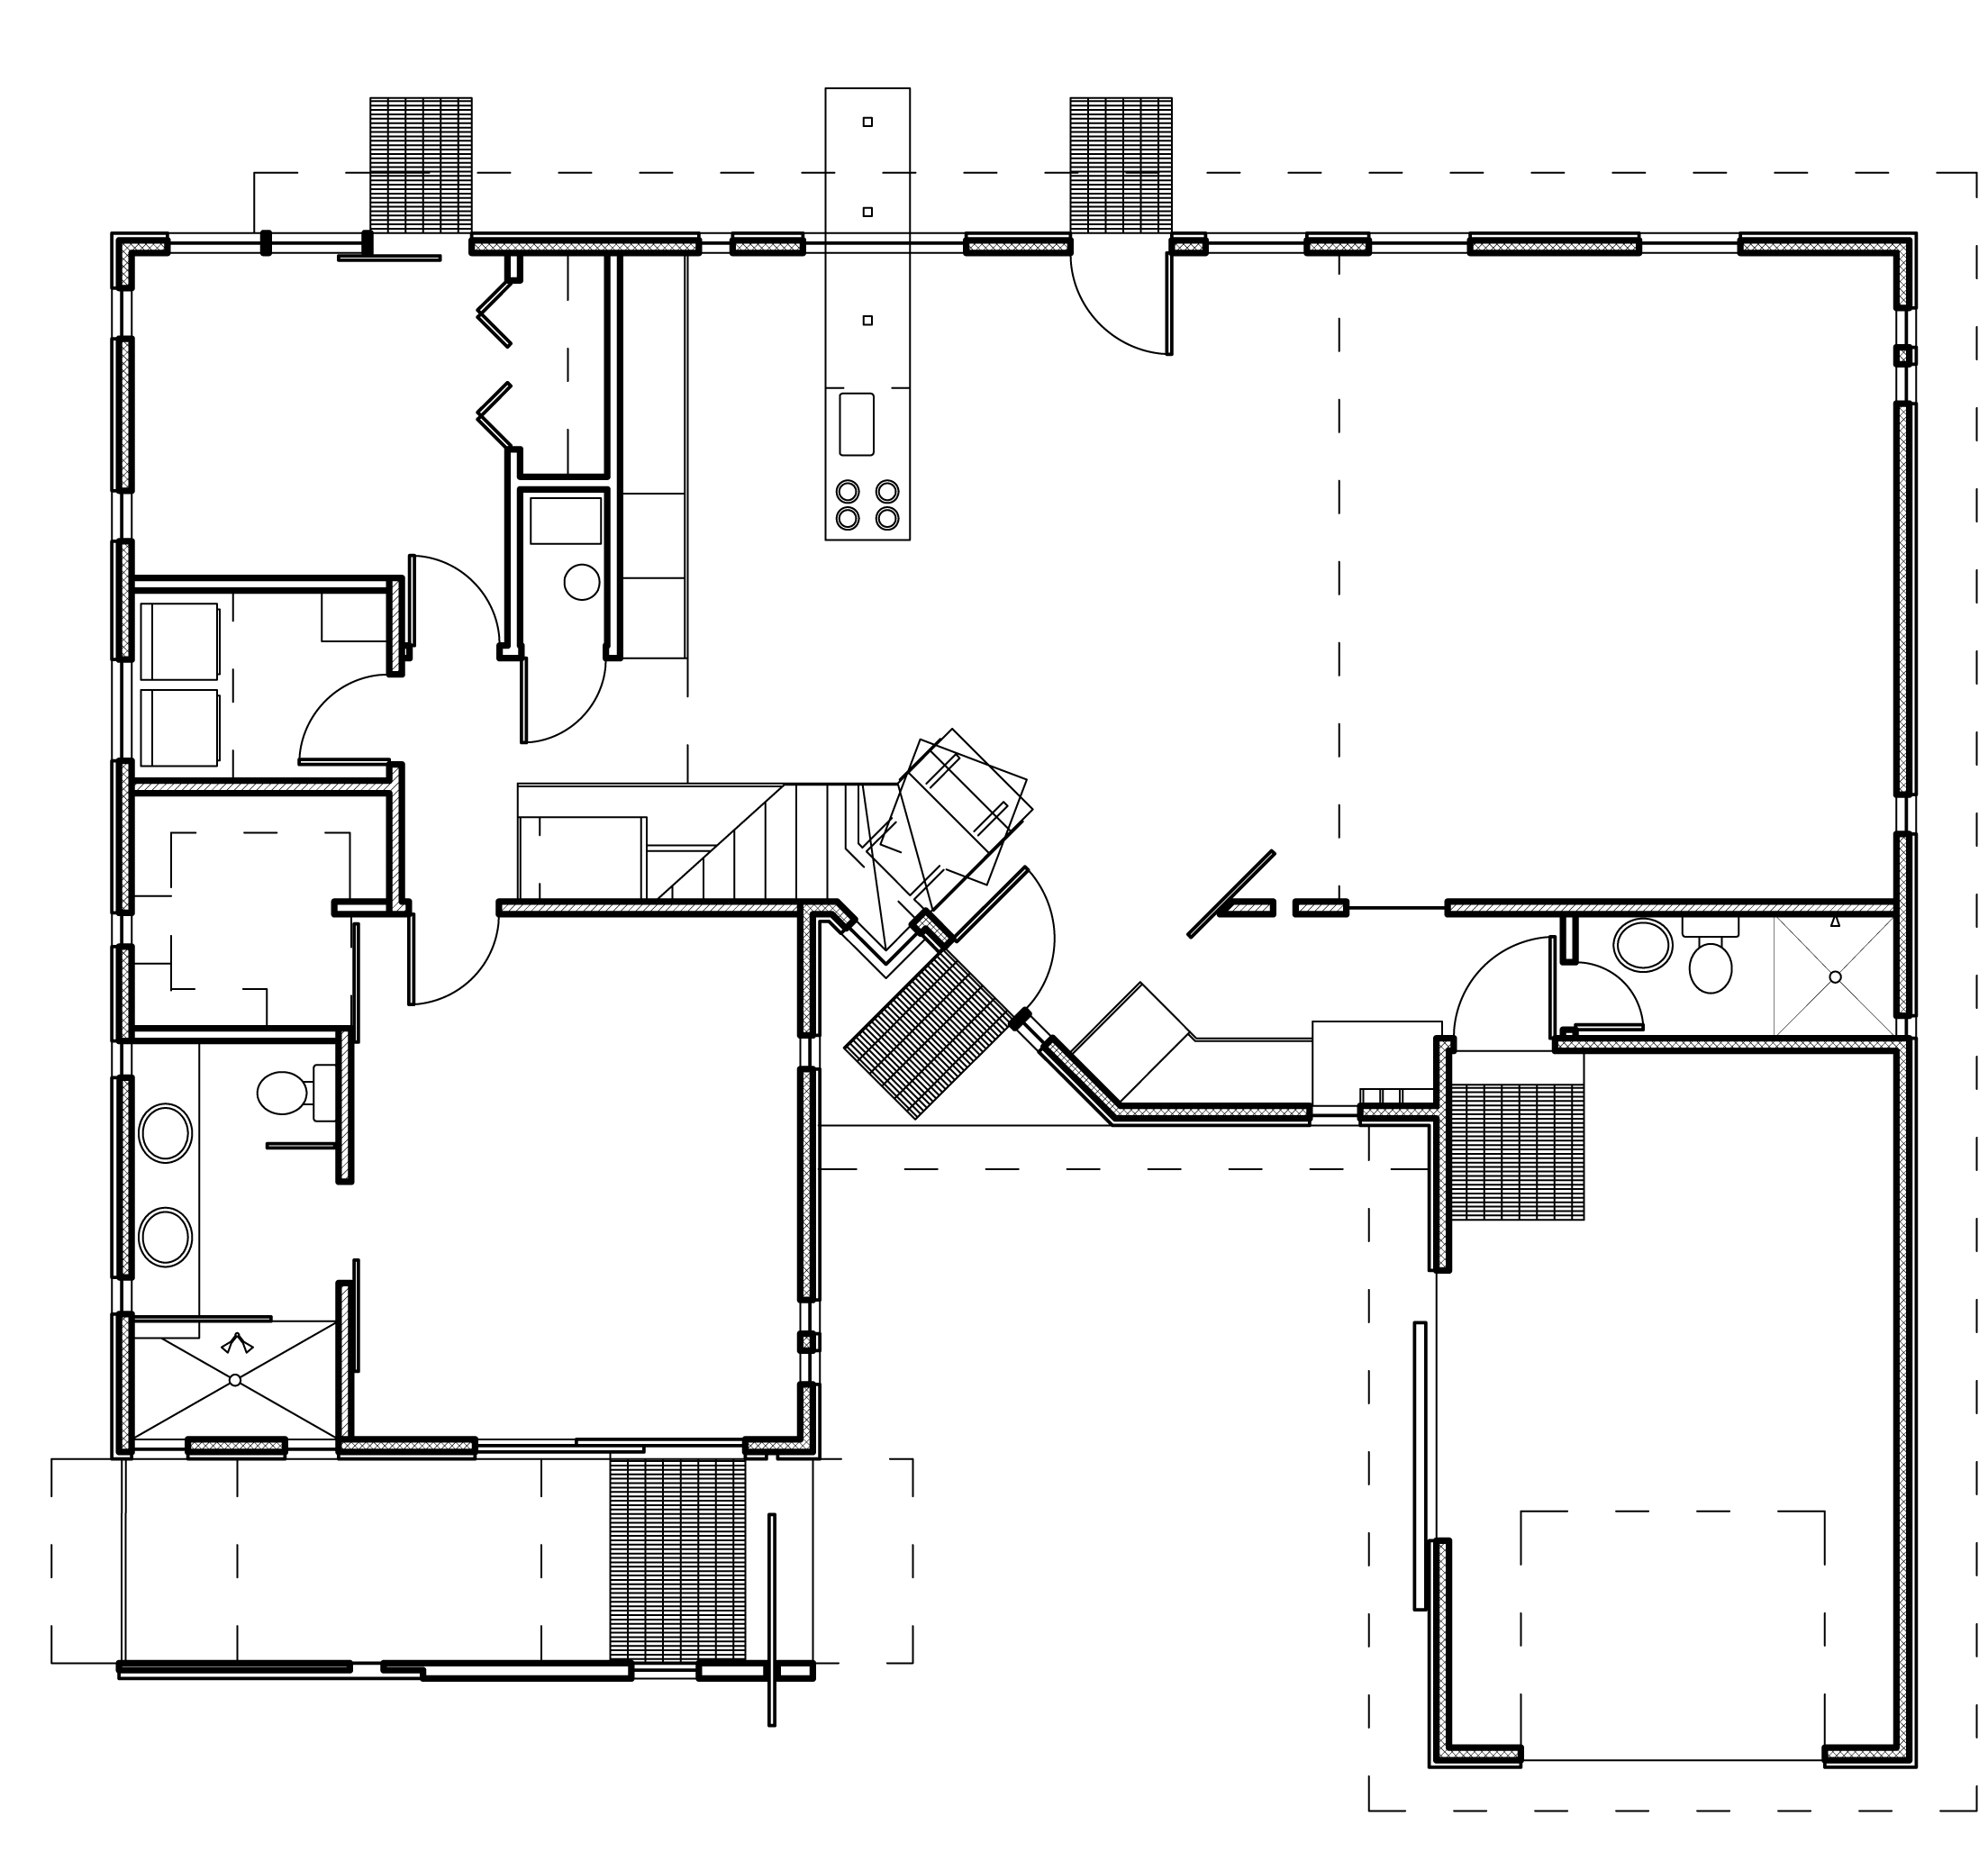 Modern house plans contemporary home designs floor plan 03 for Modern home floor plans